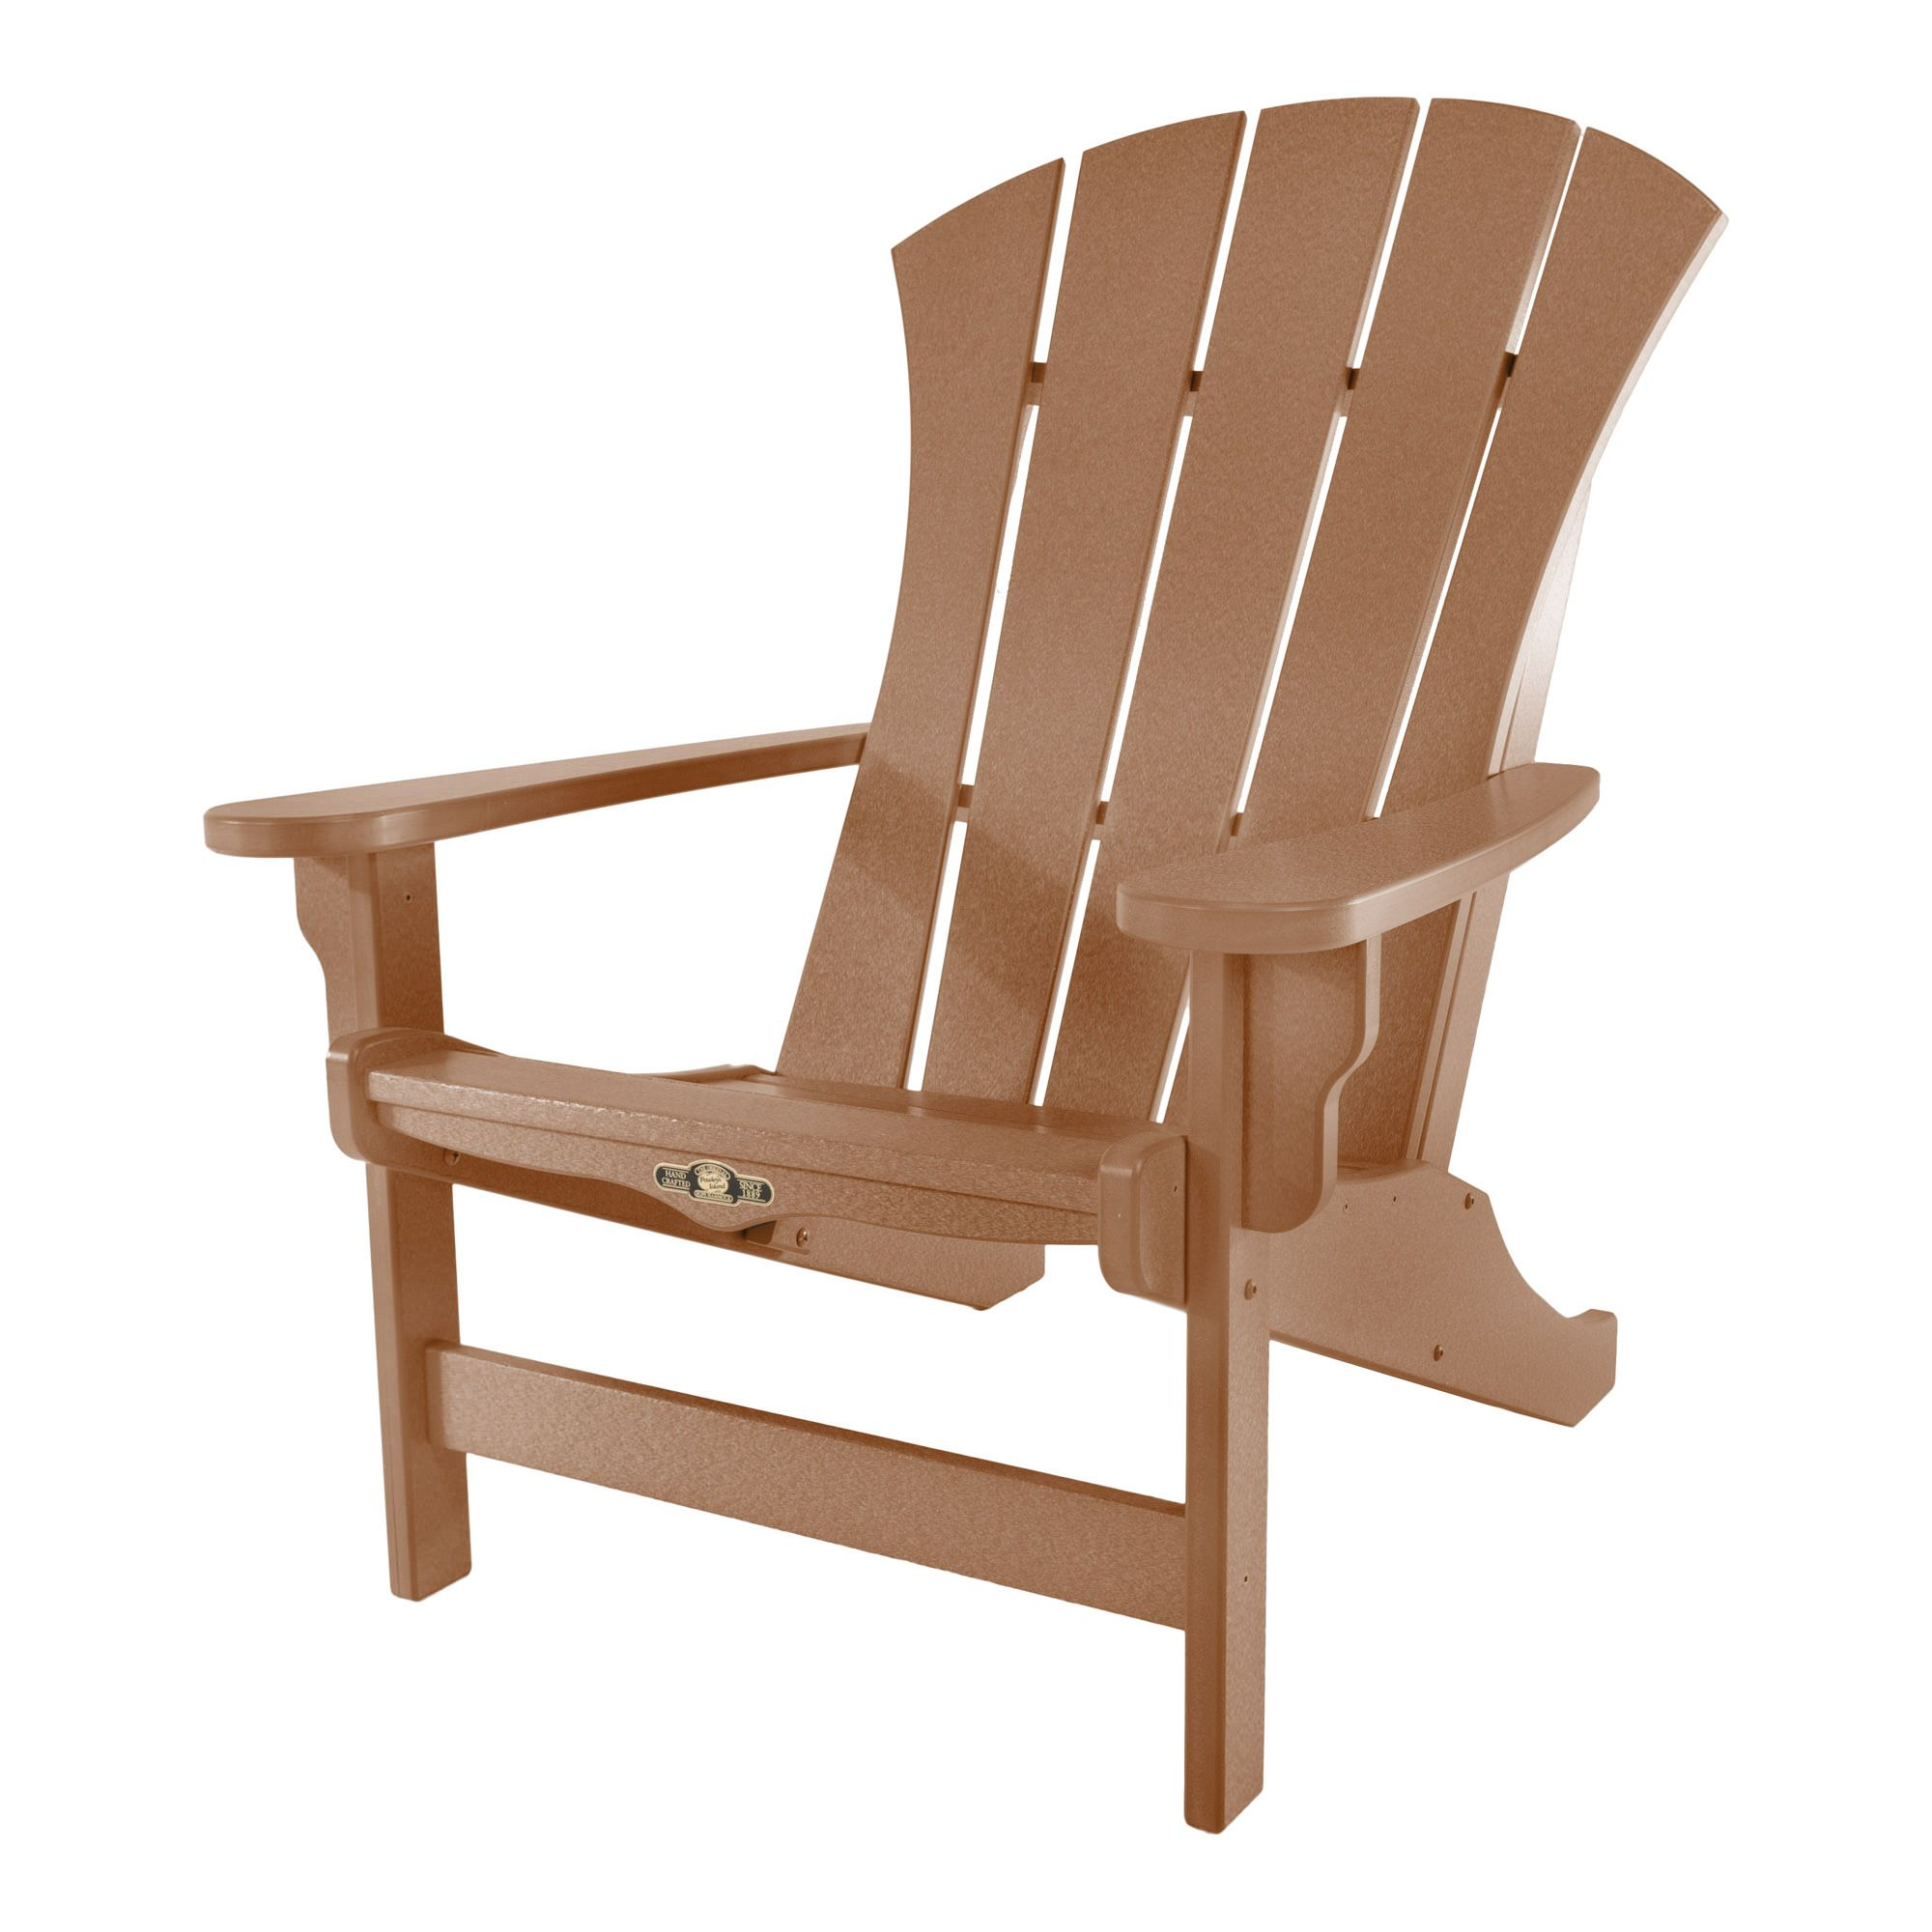 Durawood Sunrise Adirondack Chair Pawleys Island Hammocks